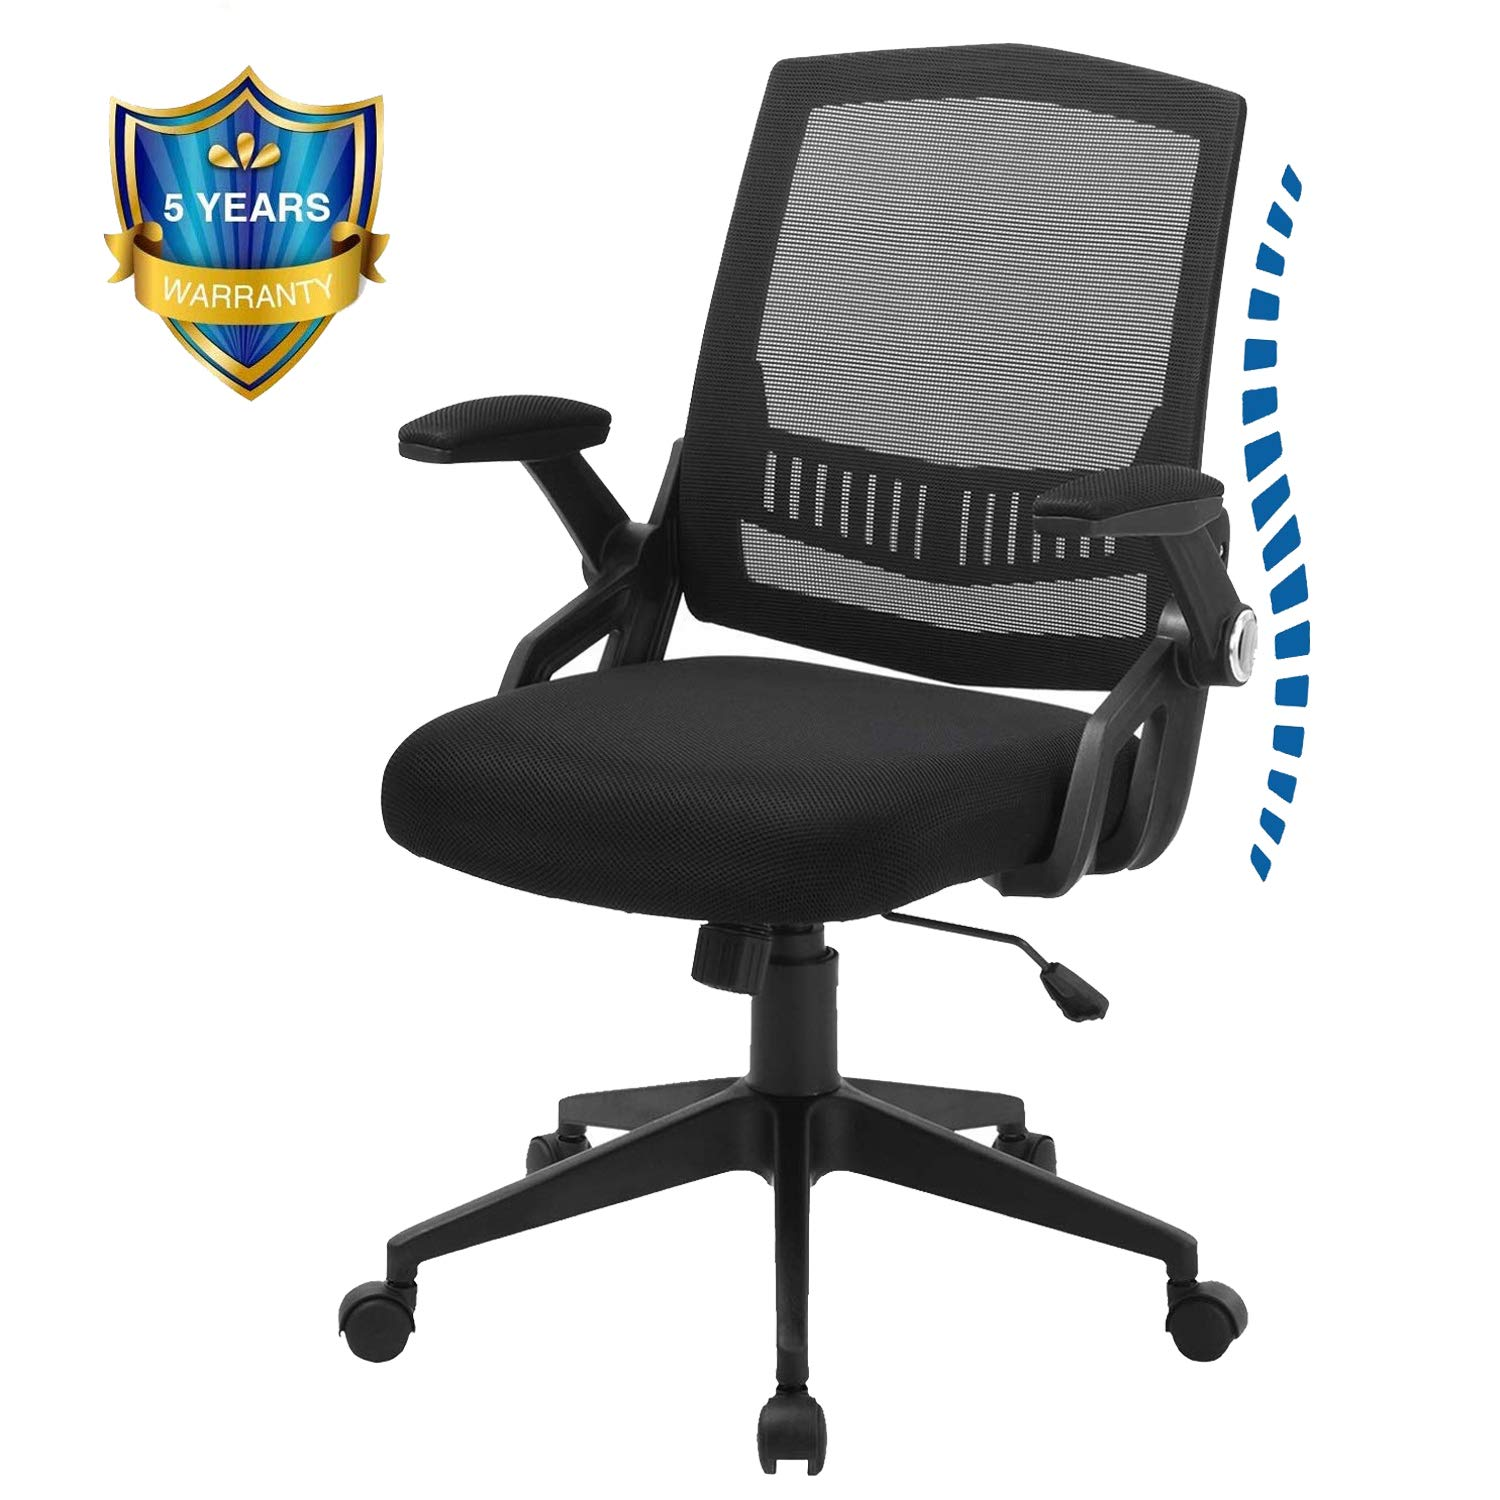 Office Chairs, ZLHECTO Mid-Back Computer Desk Chairs with Ergonomic Back, Swivel Task Chairs with Thick Cushion, Upgraded Huge Cushion Foam - Hold up to 300lbs, 5-Years Warranty …